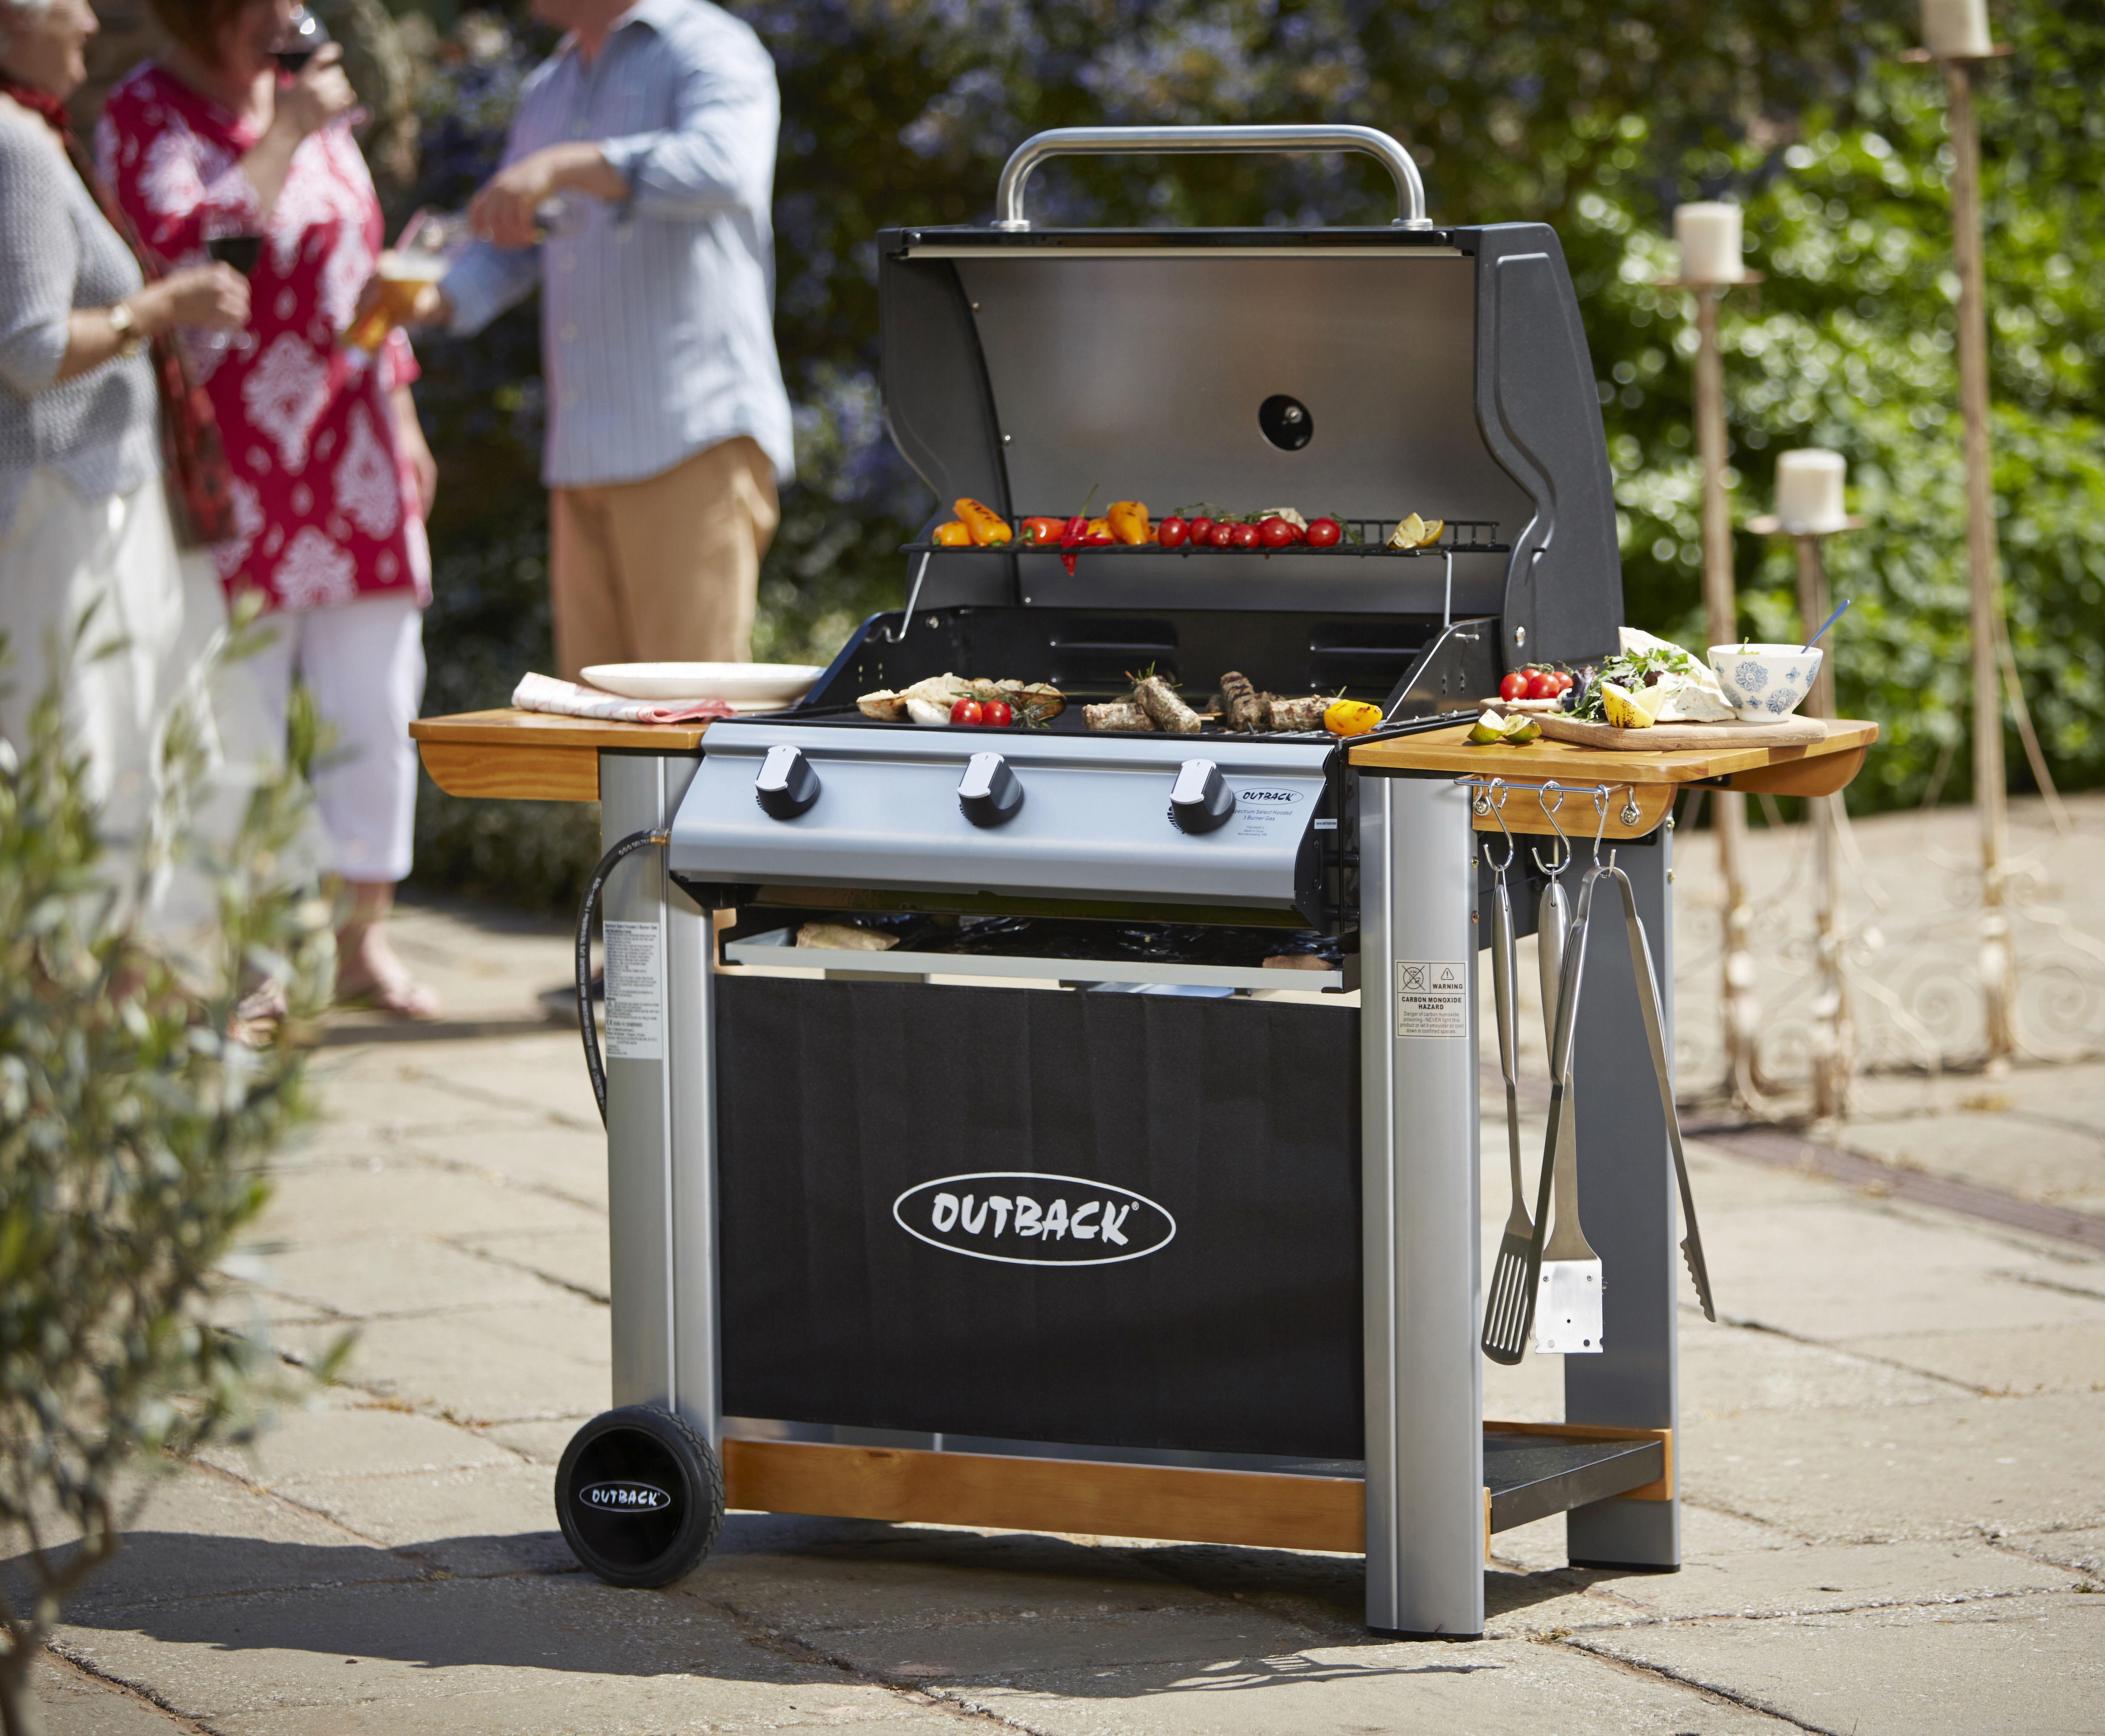 Outback Spectrum 3 Burner Hooded BBQ Barbecue